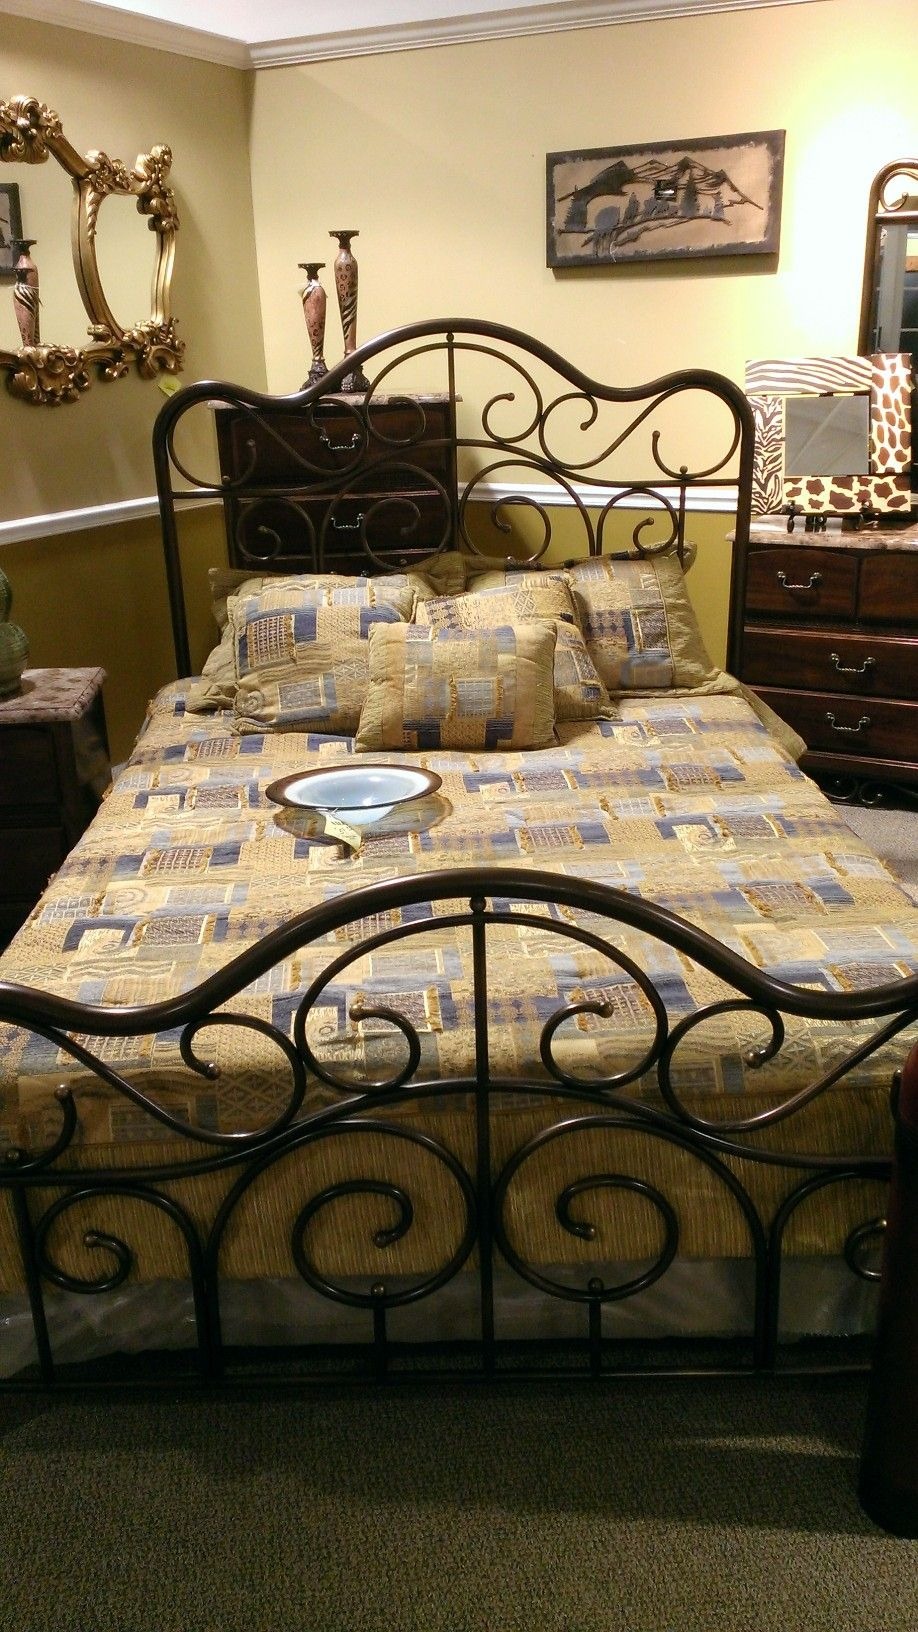 Bed frame at Big Sandy. Bed frame, Bed, Home decor